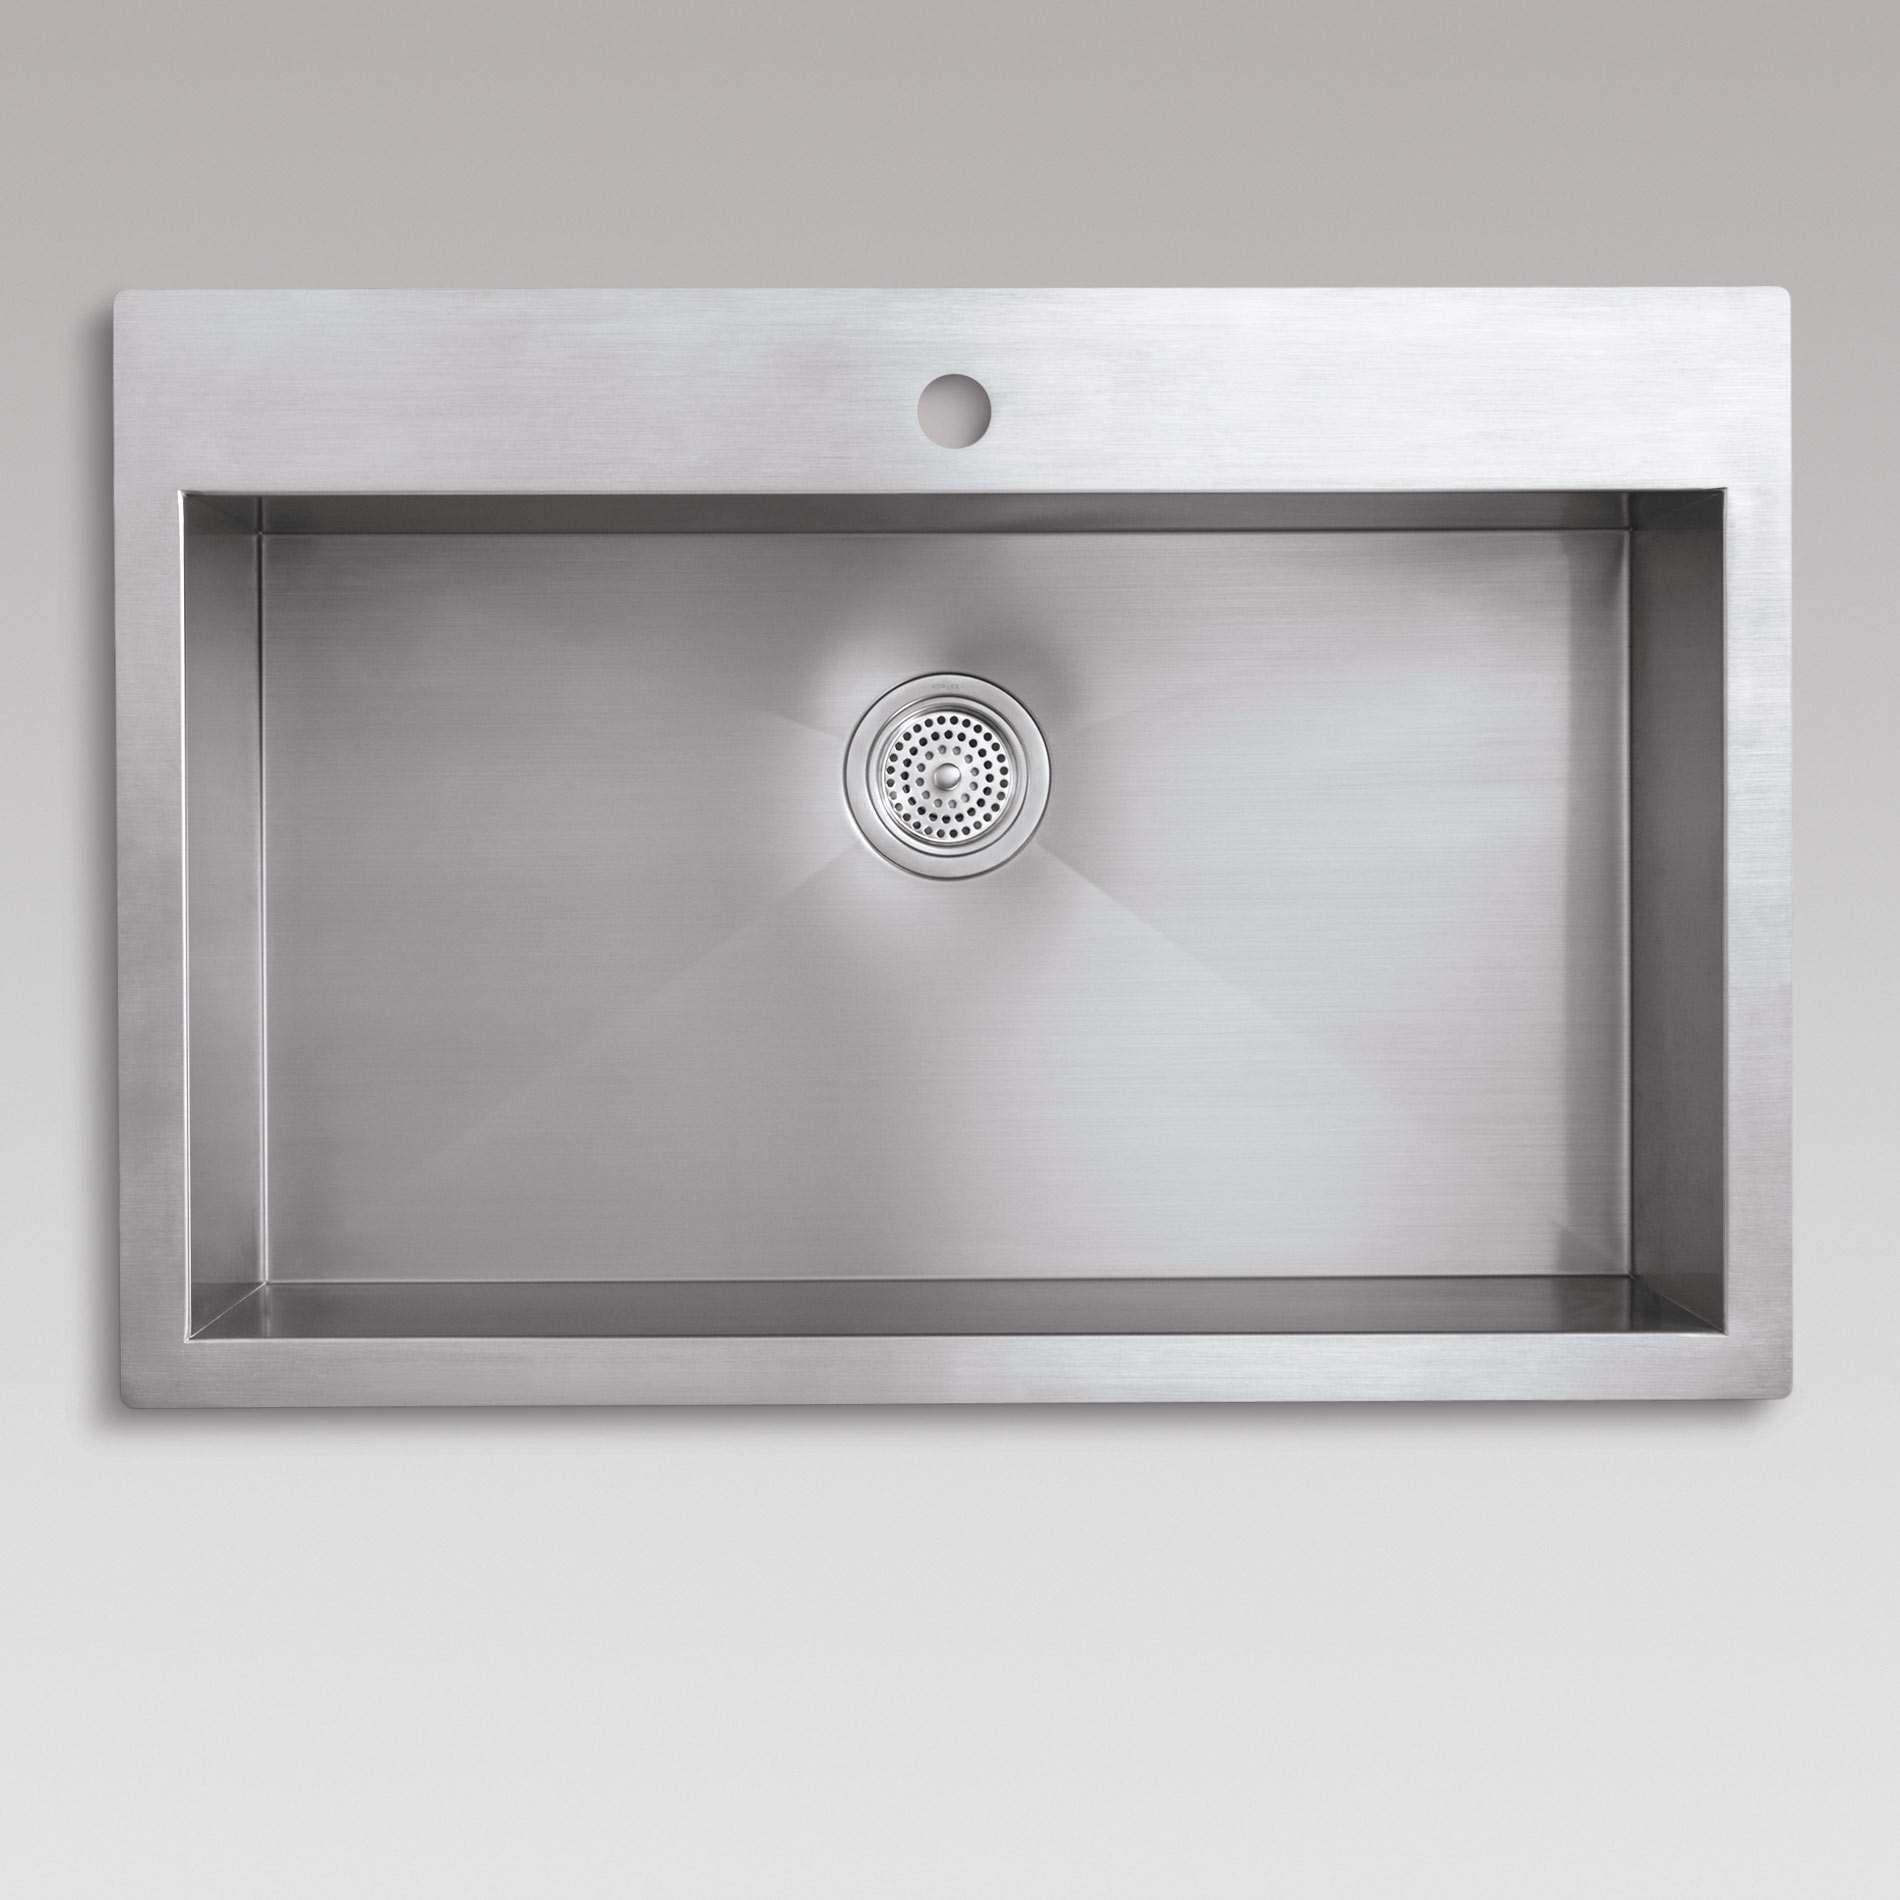 Picture of Vault 3821 Stainless Steel Sink